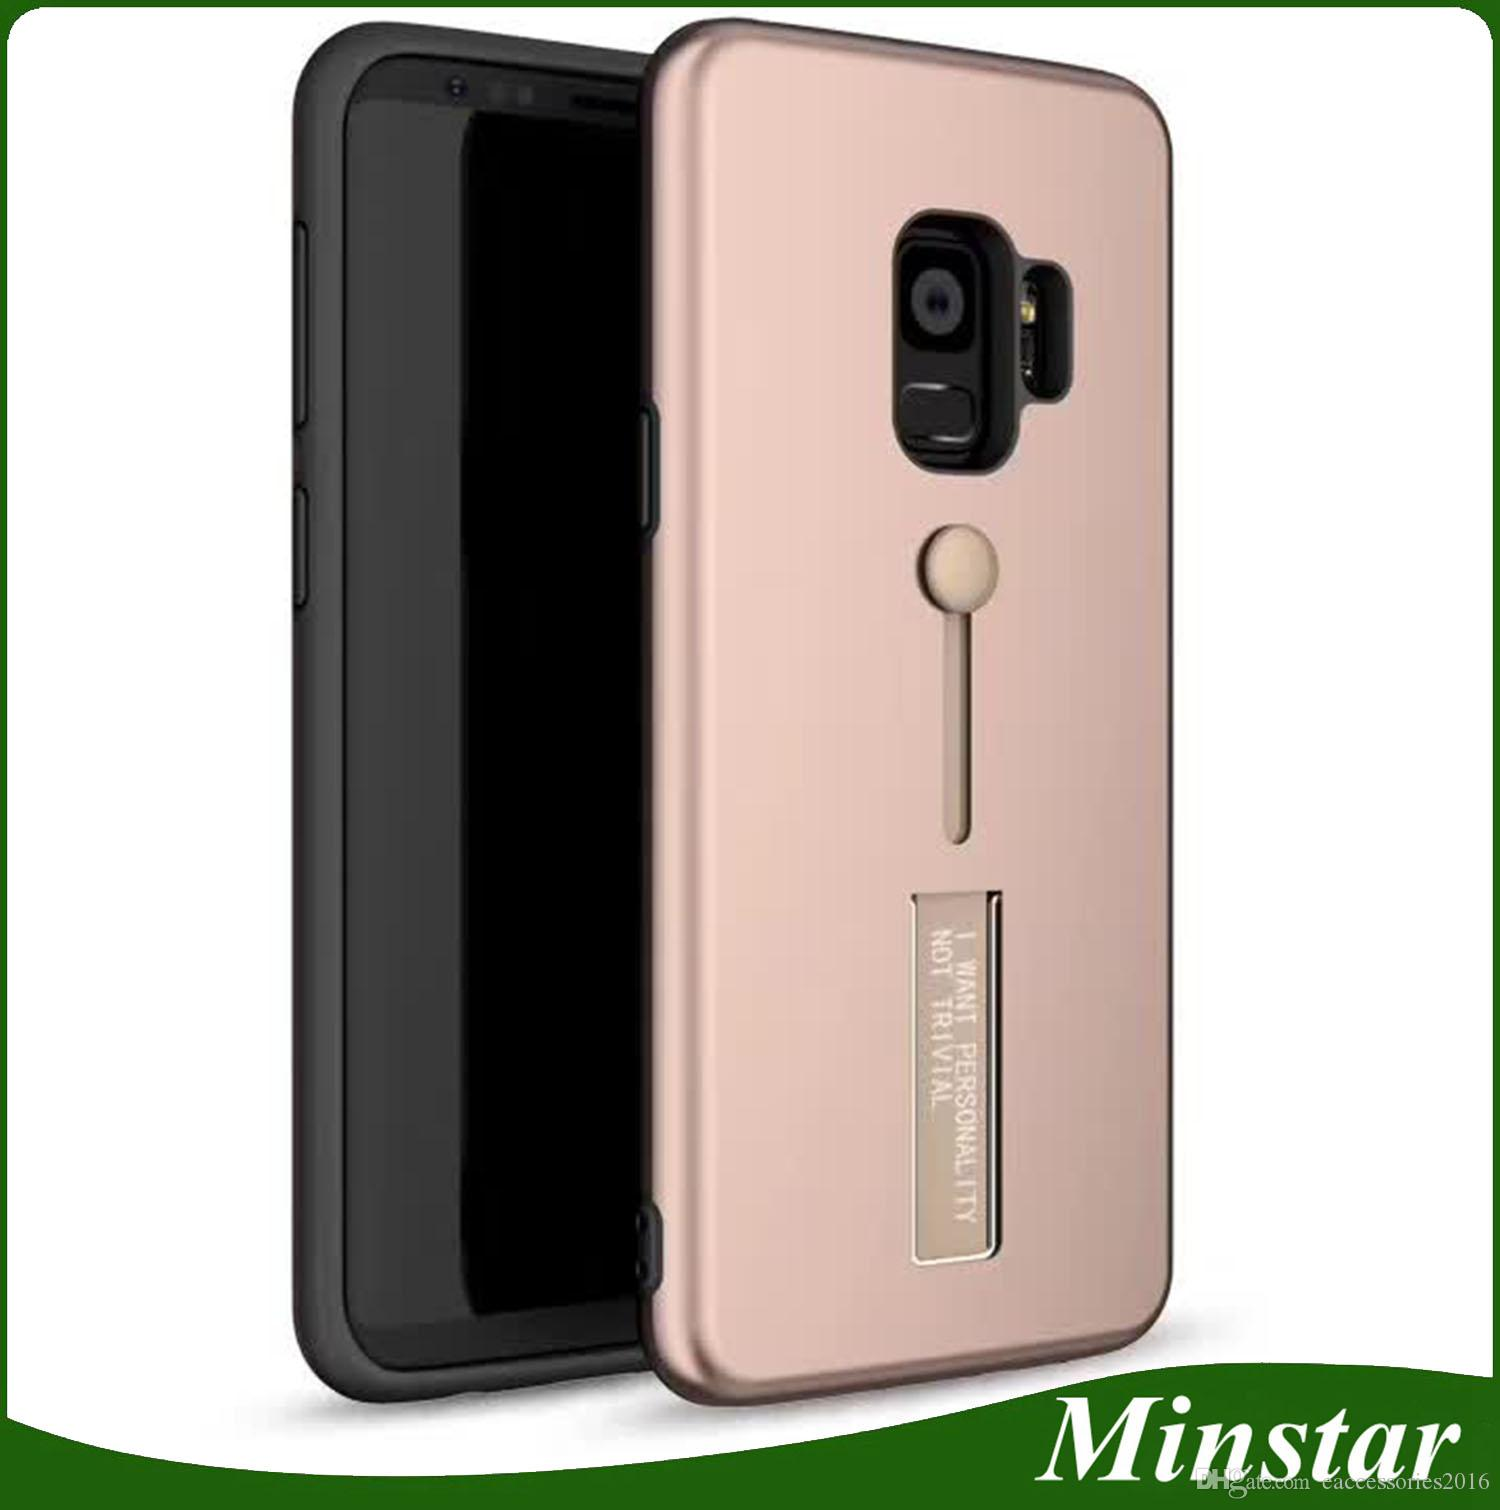 For279 Ring Stand Case For Uk Providers Huawei P Stmart Shock Armor Phone Cover Case Cell Phone Cover Cell Phone Wallet Case From Eaccessories2016